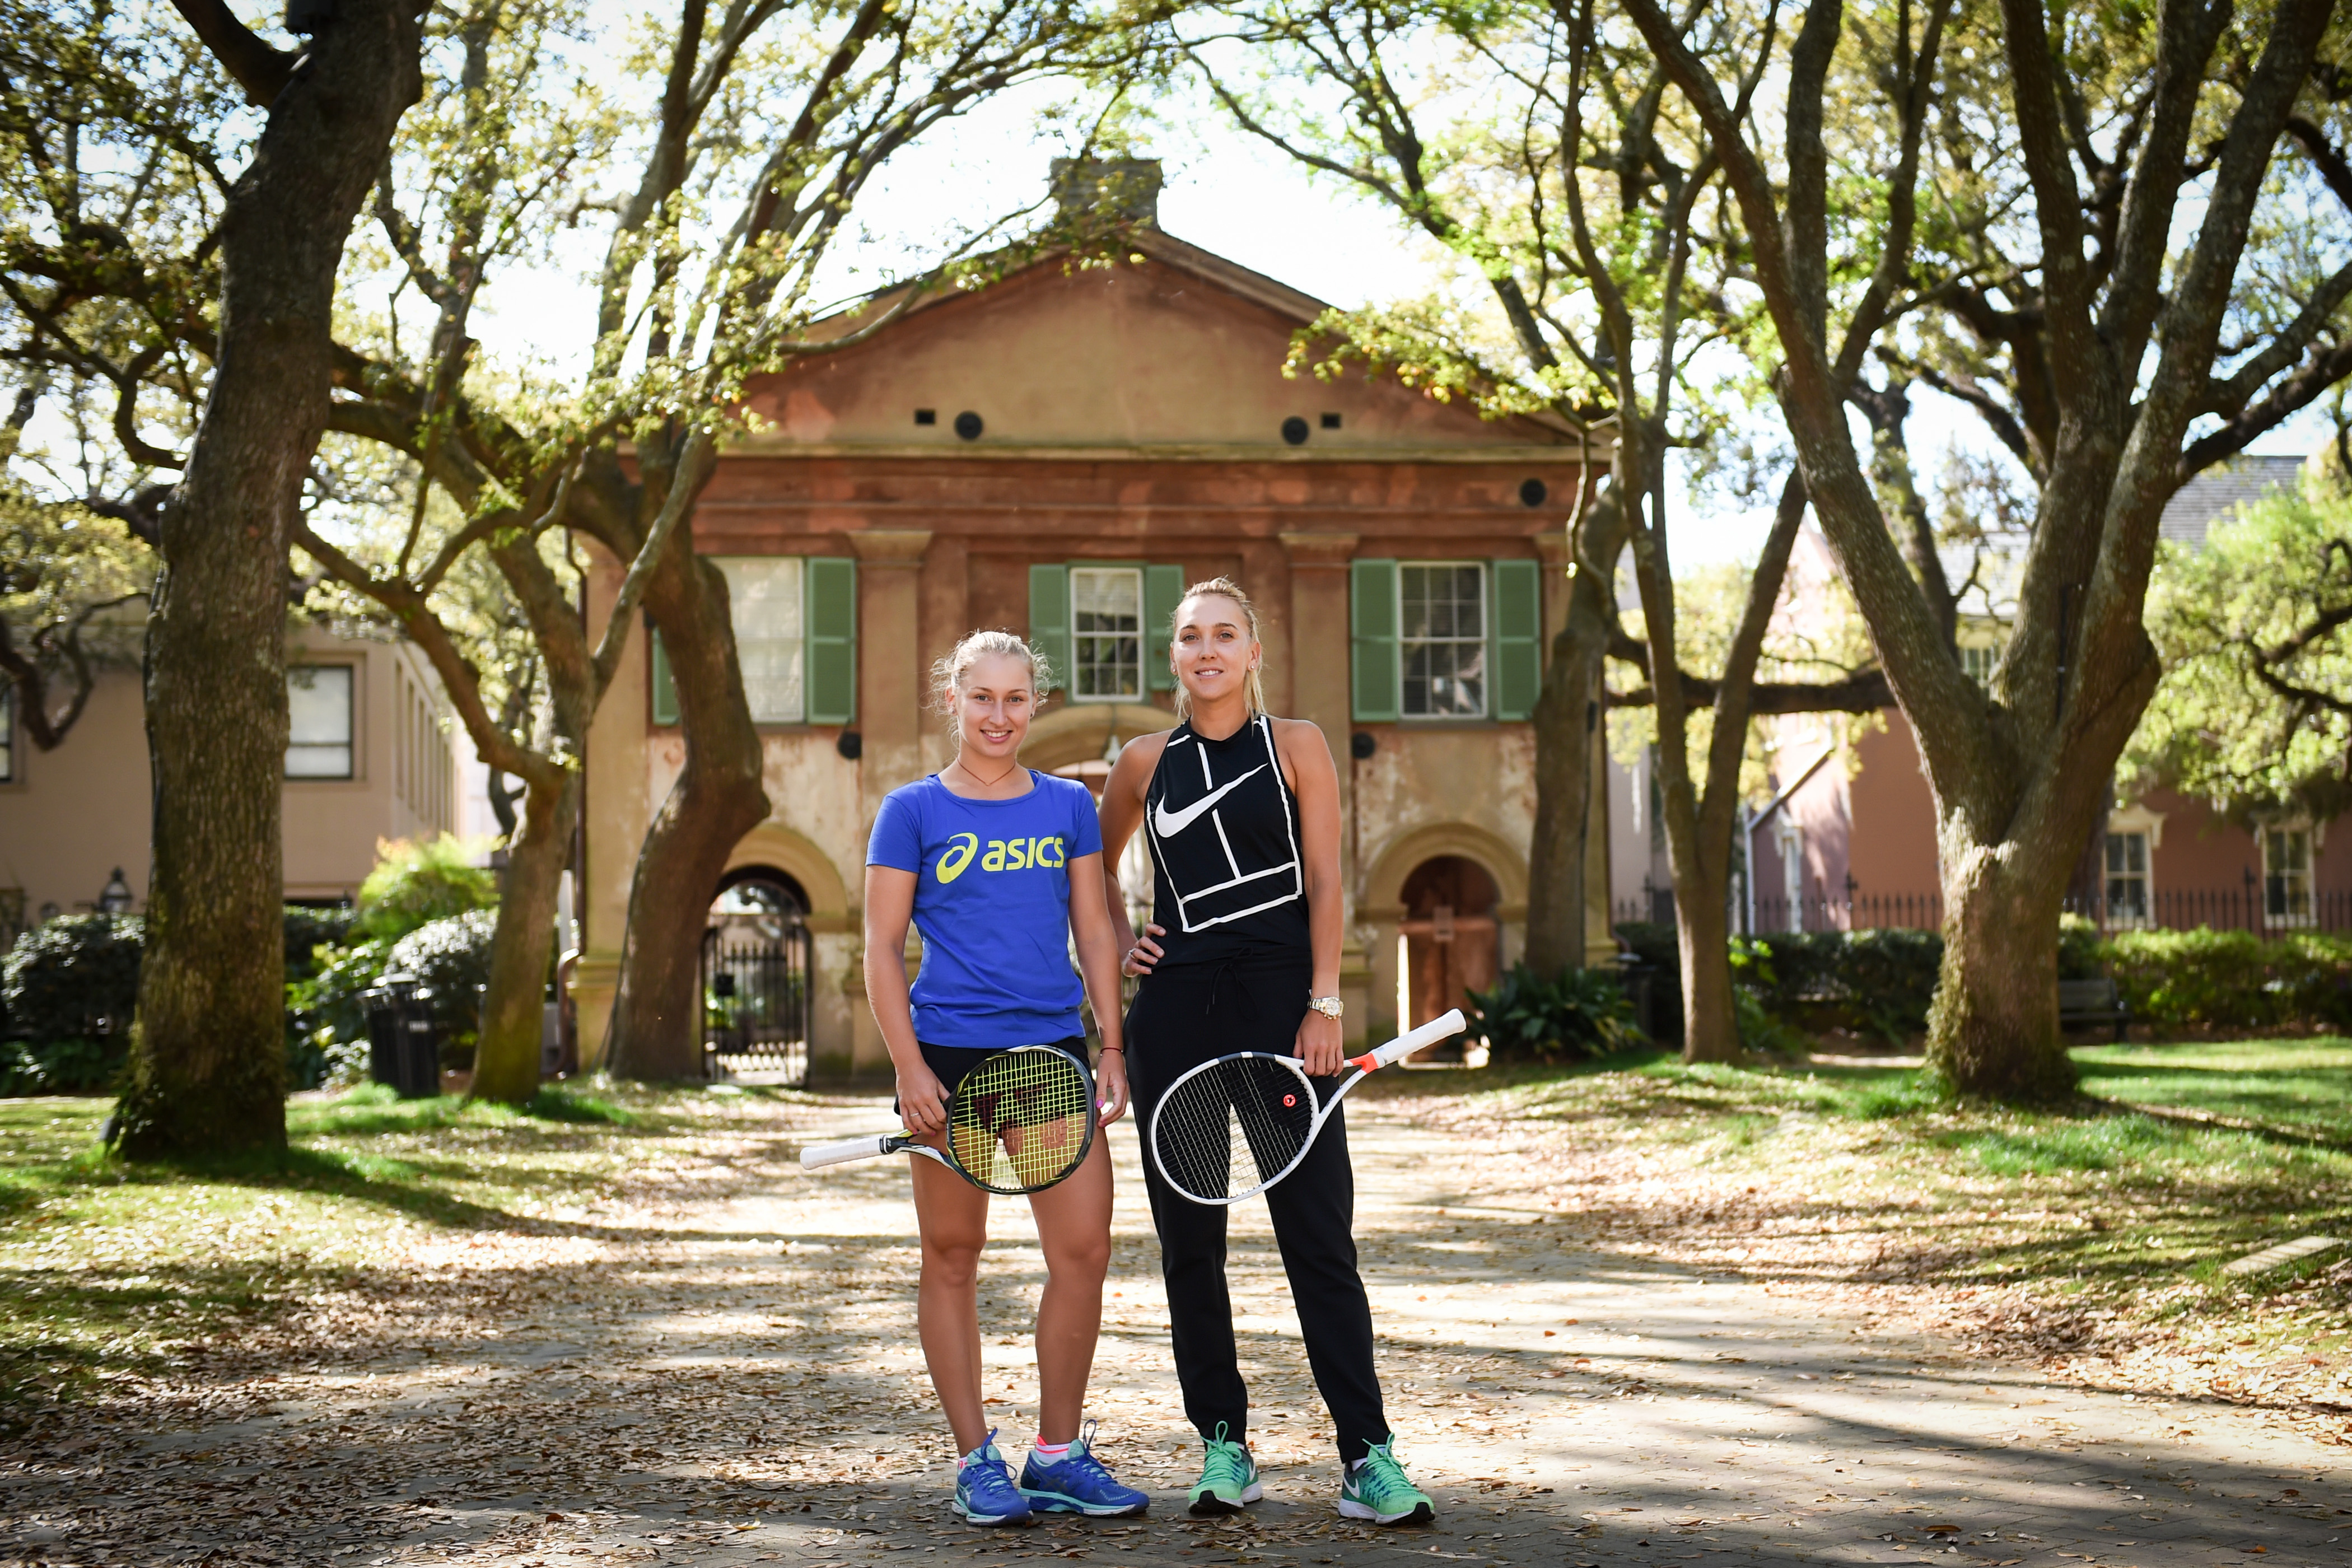 Iconic Photo Shoot with Elena Vesnina and Daria Gavrilova